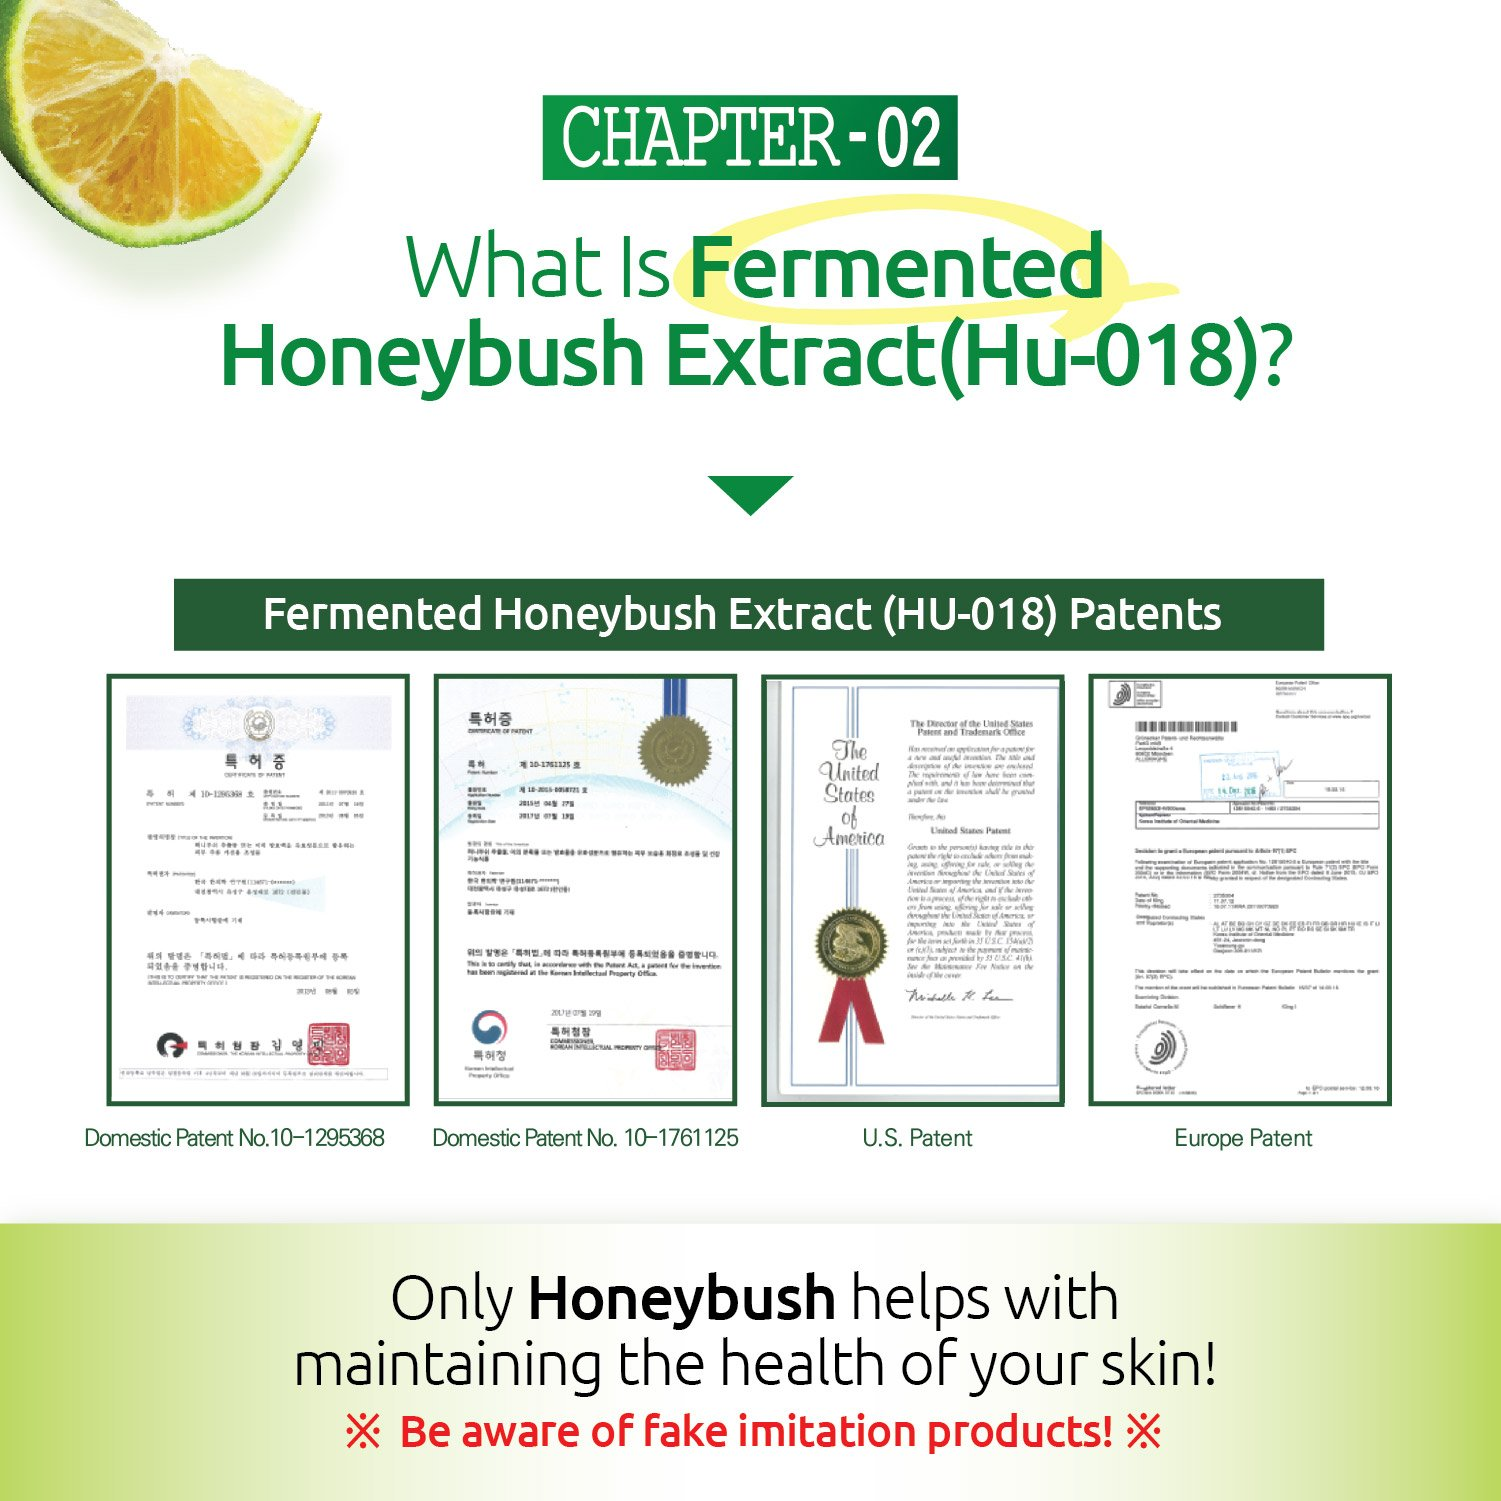 InnerSet Honeybush Pumpkin Nutricosmetic Beauty Drink - 100 ml x 72 pouches - Fermented Extract, Skincare Patented Formulation/Made in Korea/Ships from US California by InnerSet (Image #3)